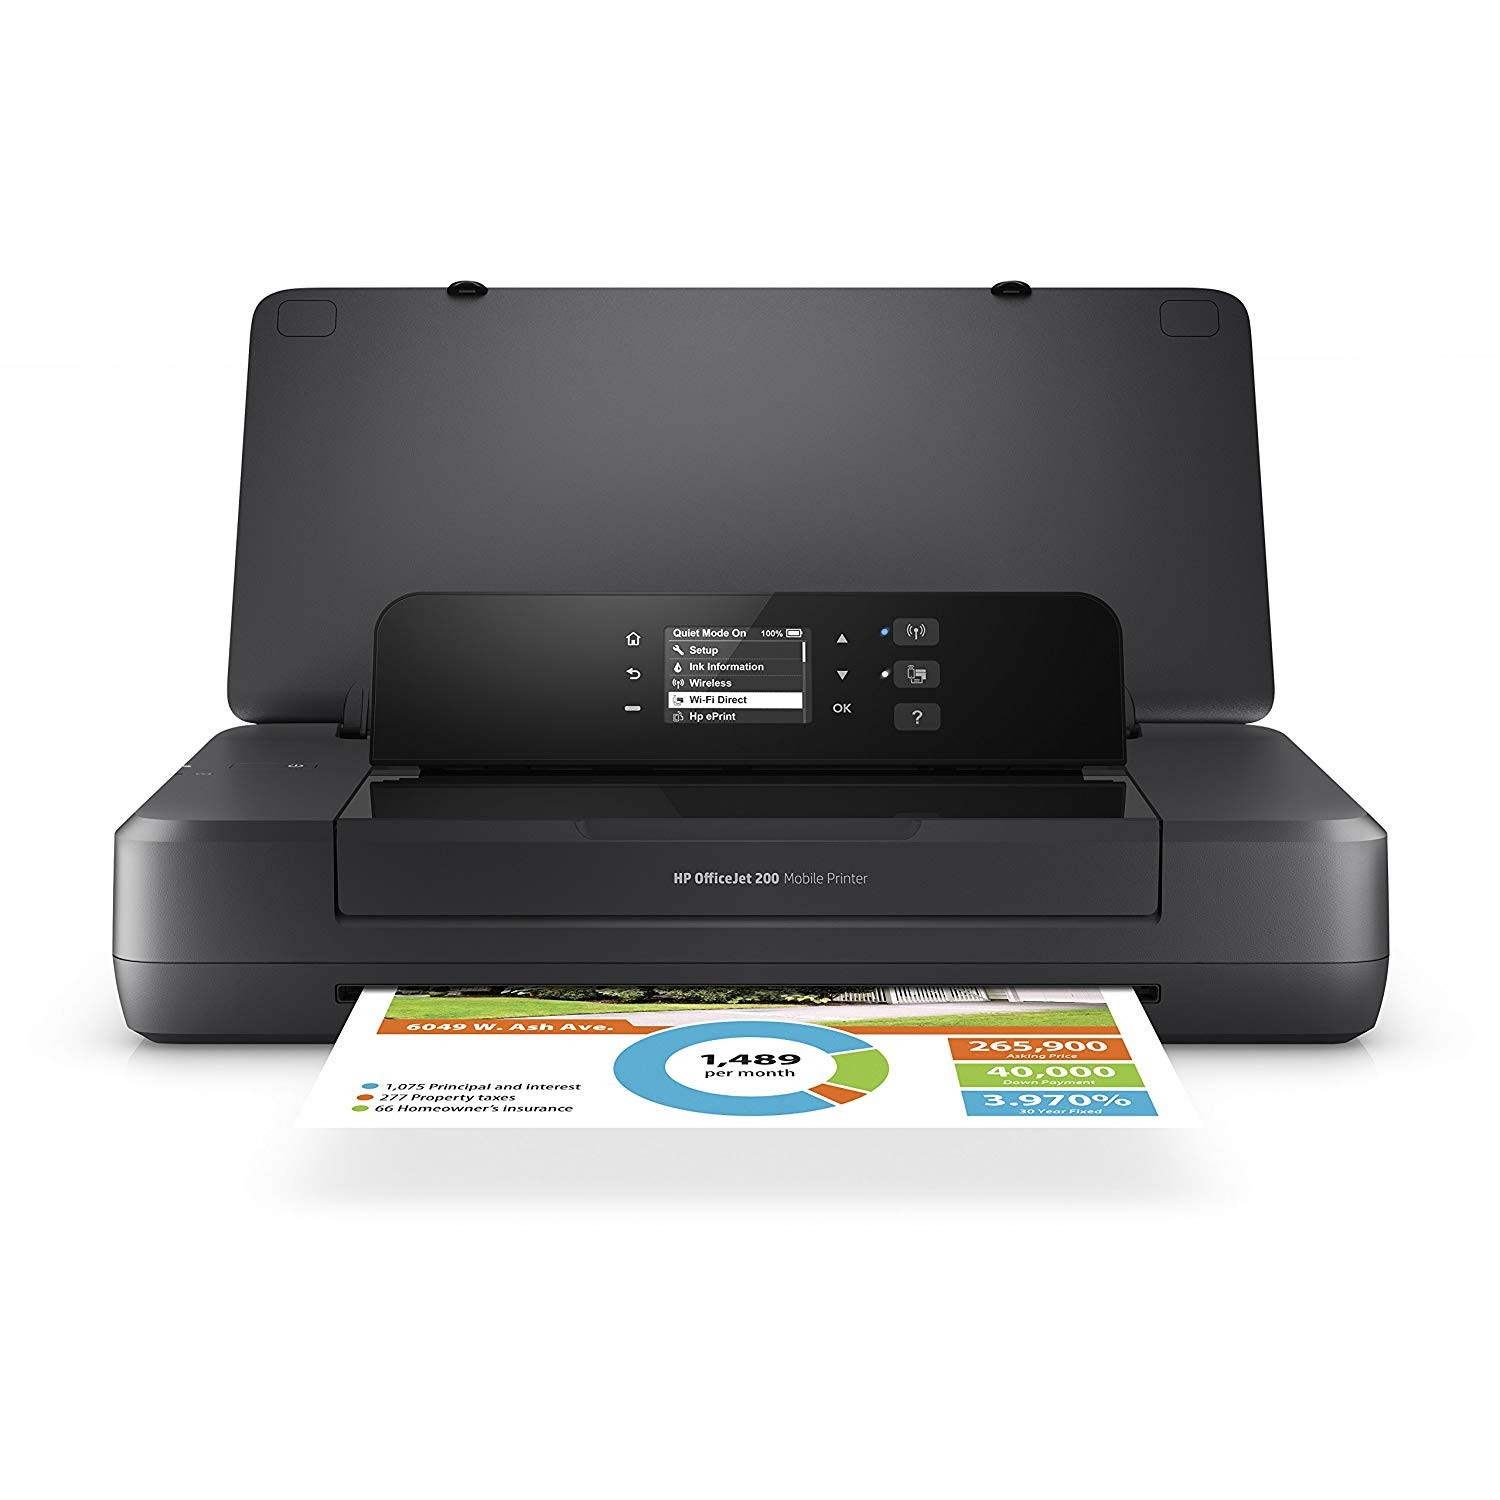 HP Officejet 200 Mobile Printer [A4 Size]